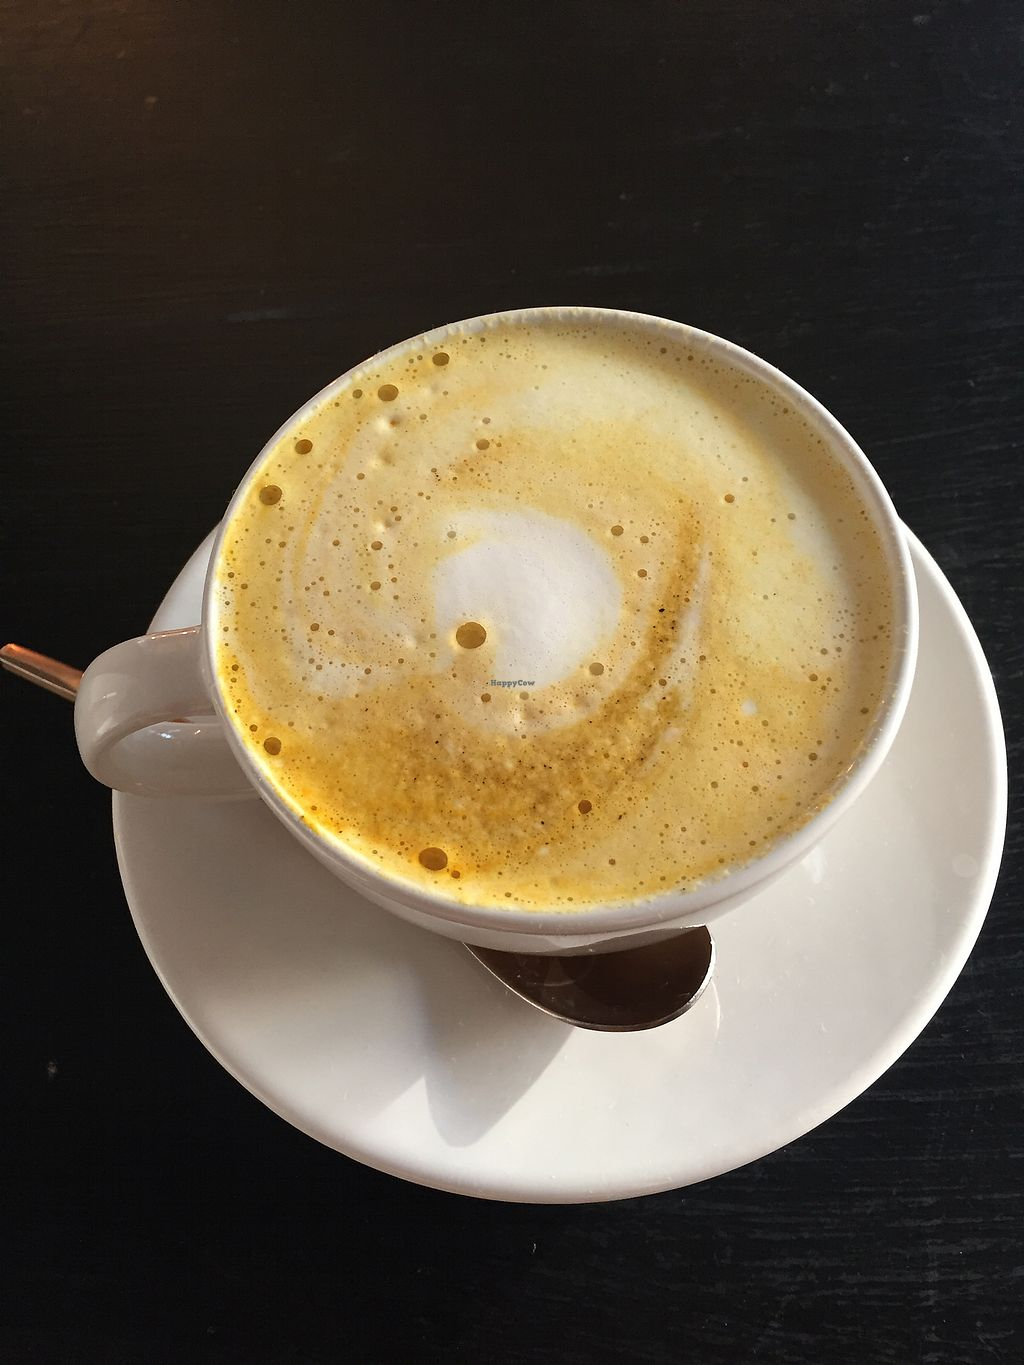 "Photo of Rawtastic  by <a href=""/members/profile/Yasminesan"">Yasminesan</a> <br/>Turmeric latte <br/> February 22, 2018  - <a href='/contact/abuse/image/63601/362209'>Report</a>"